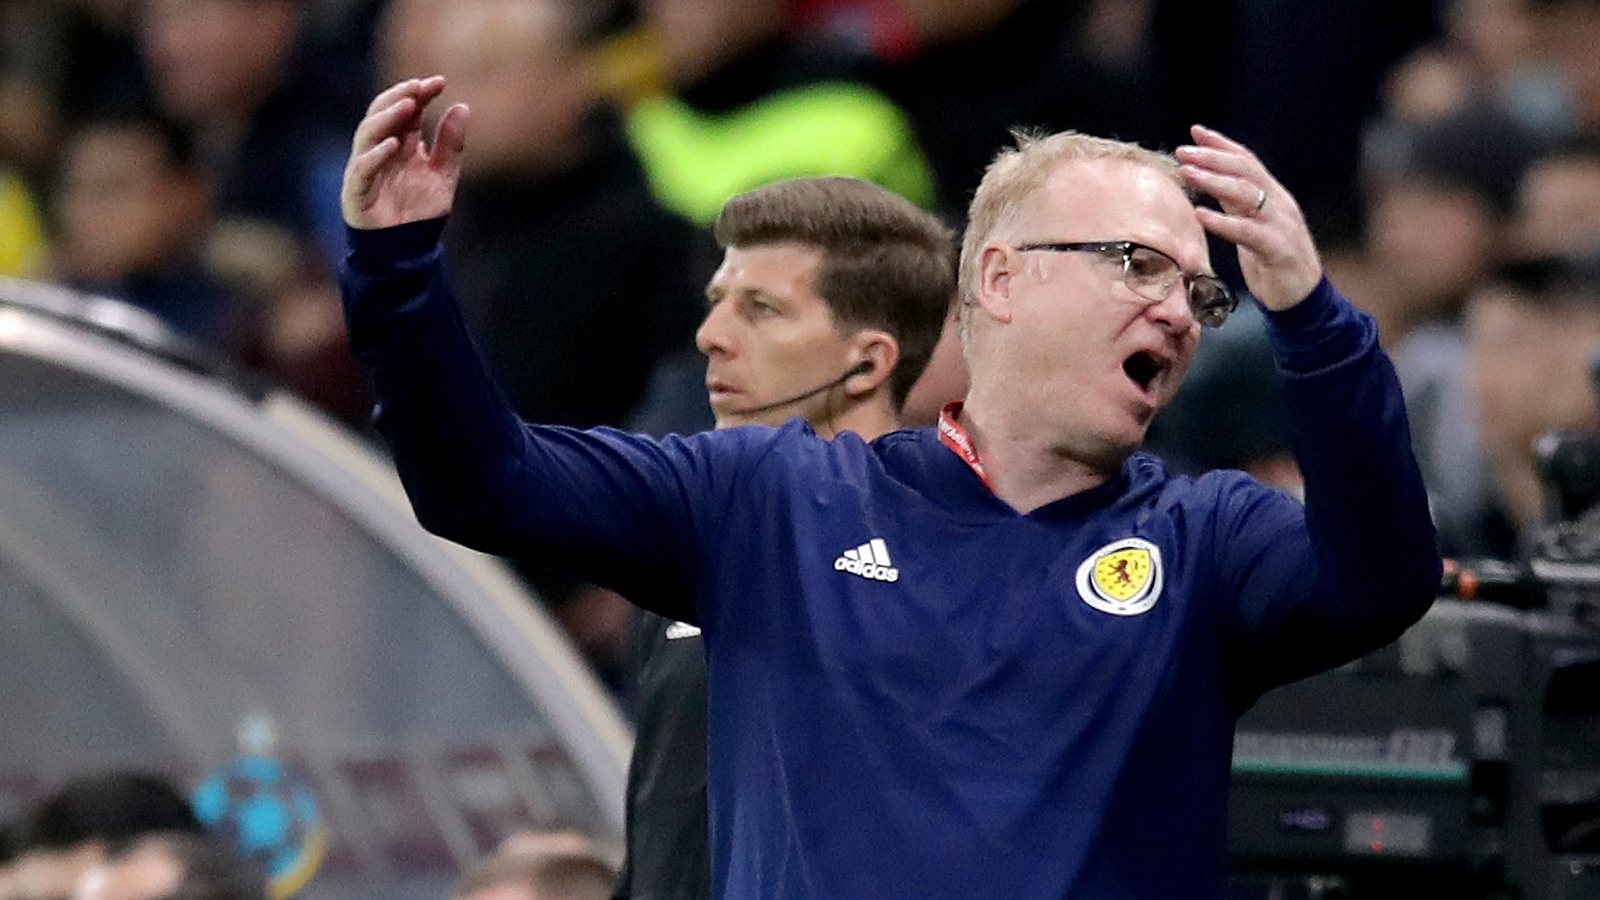 Image - Alex McLeish's side suffered a chastening defeat in Kazakhstan